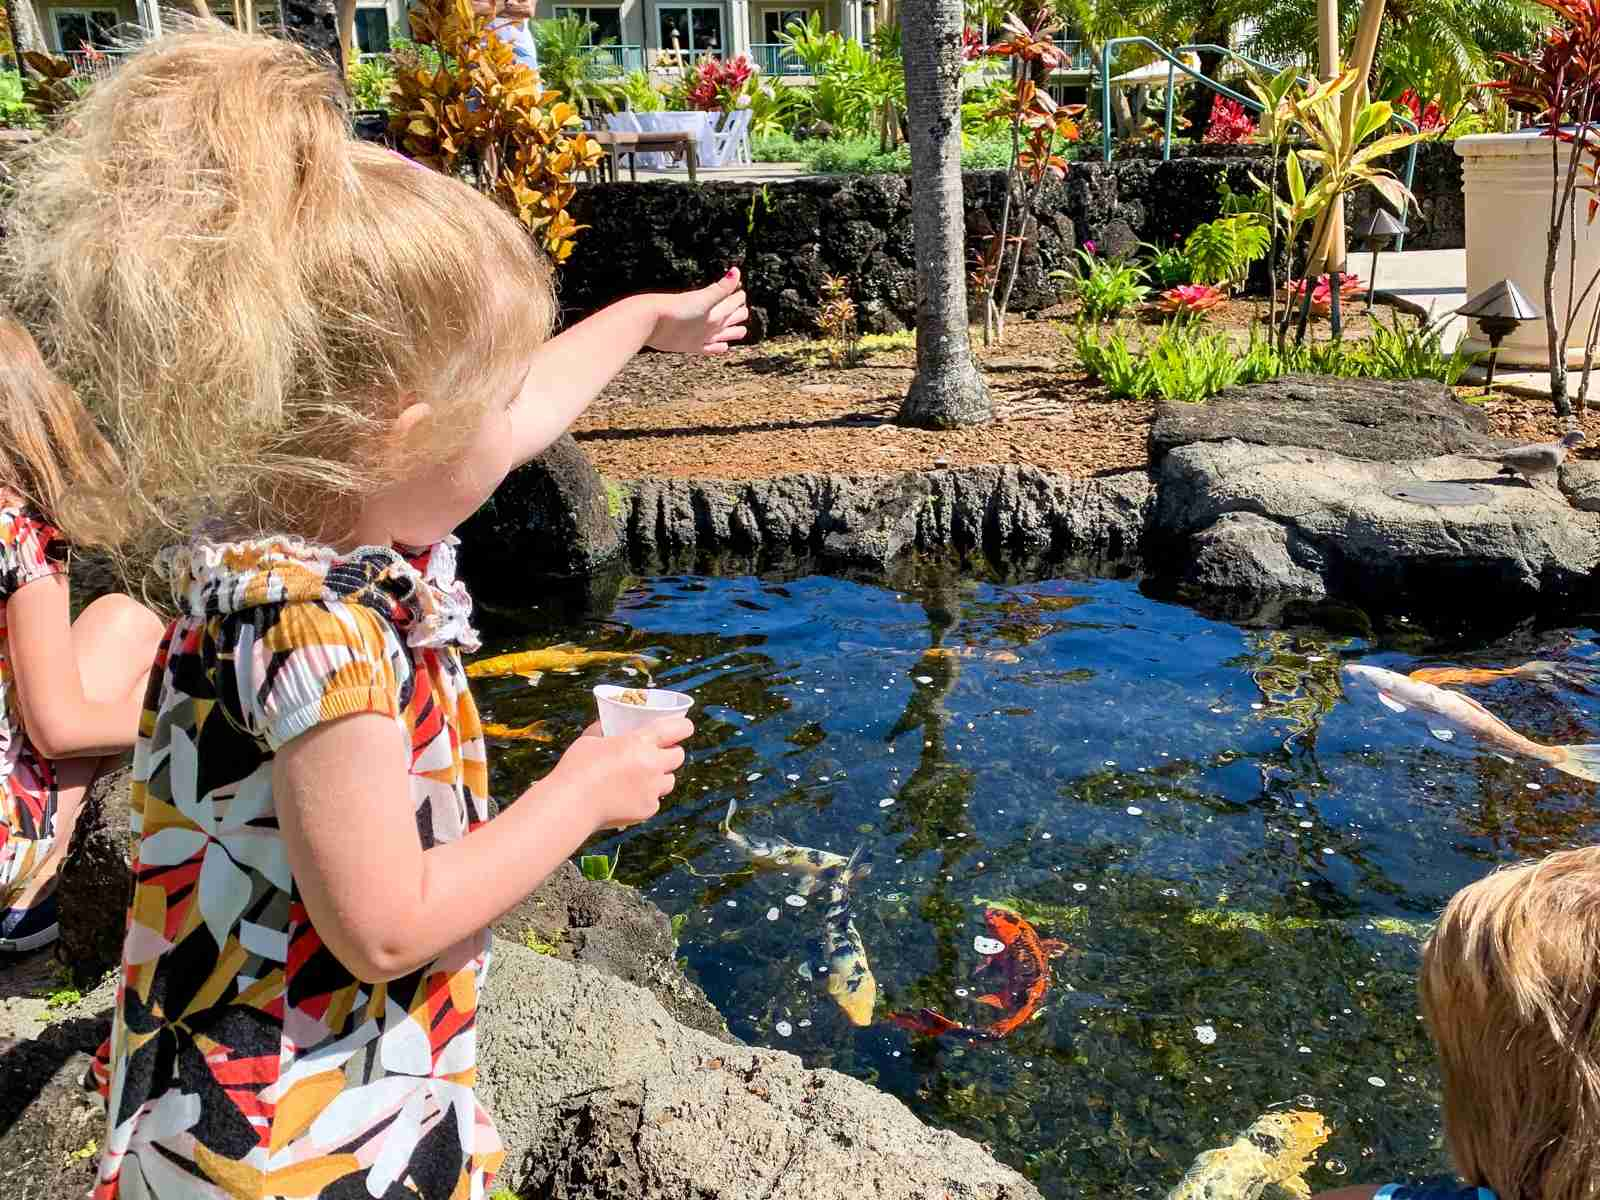 Feeding fish at the Westin Princeville (Photo by Summer Hull / The Points Guy)